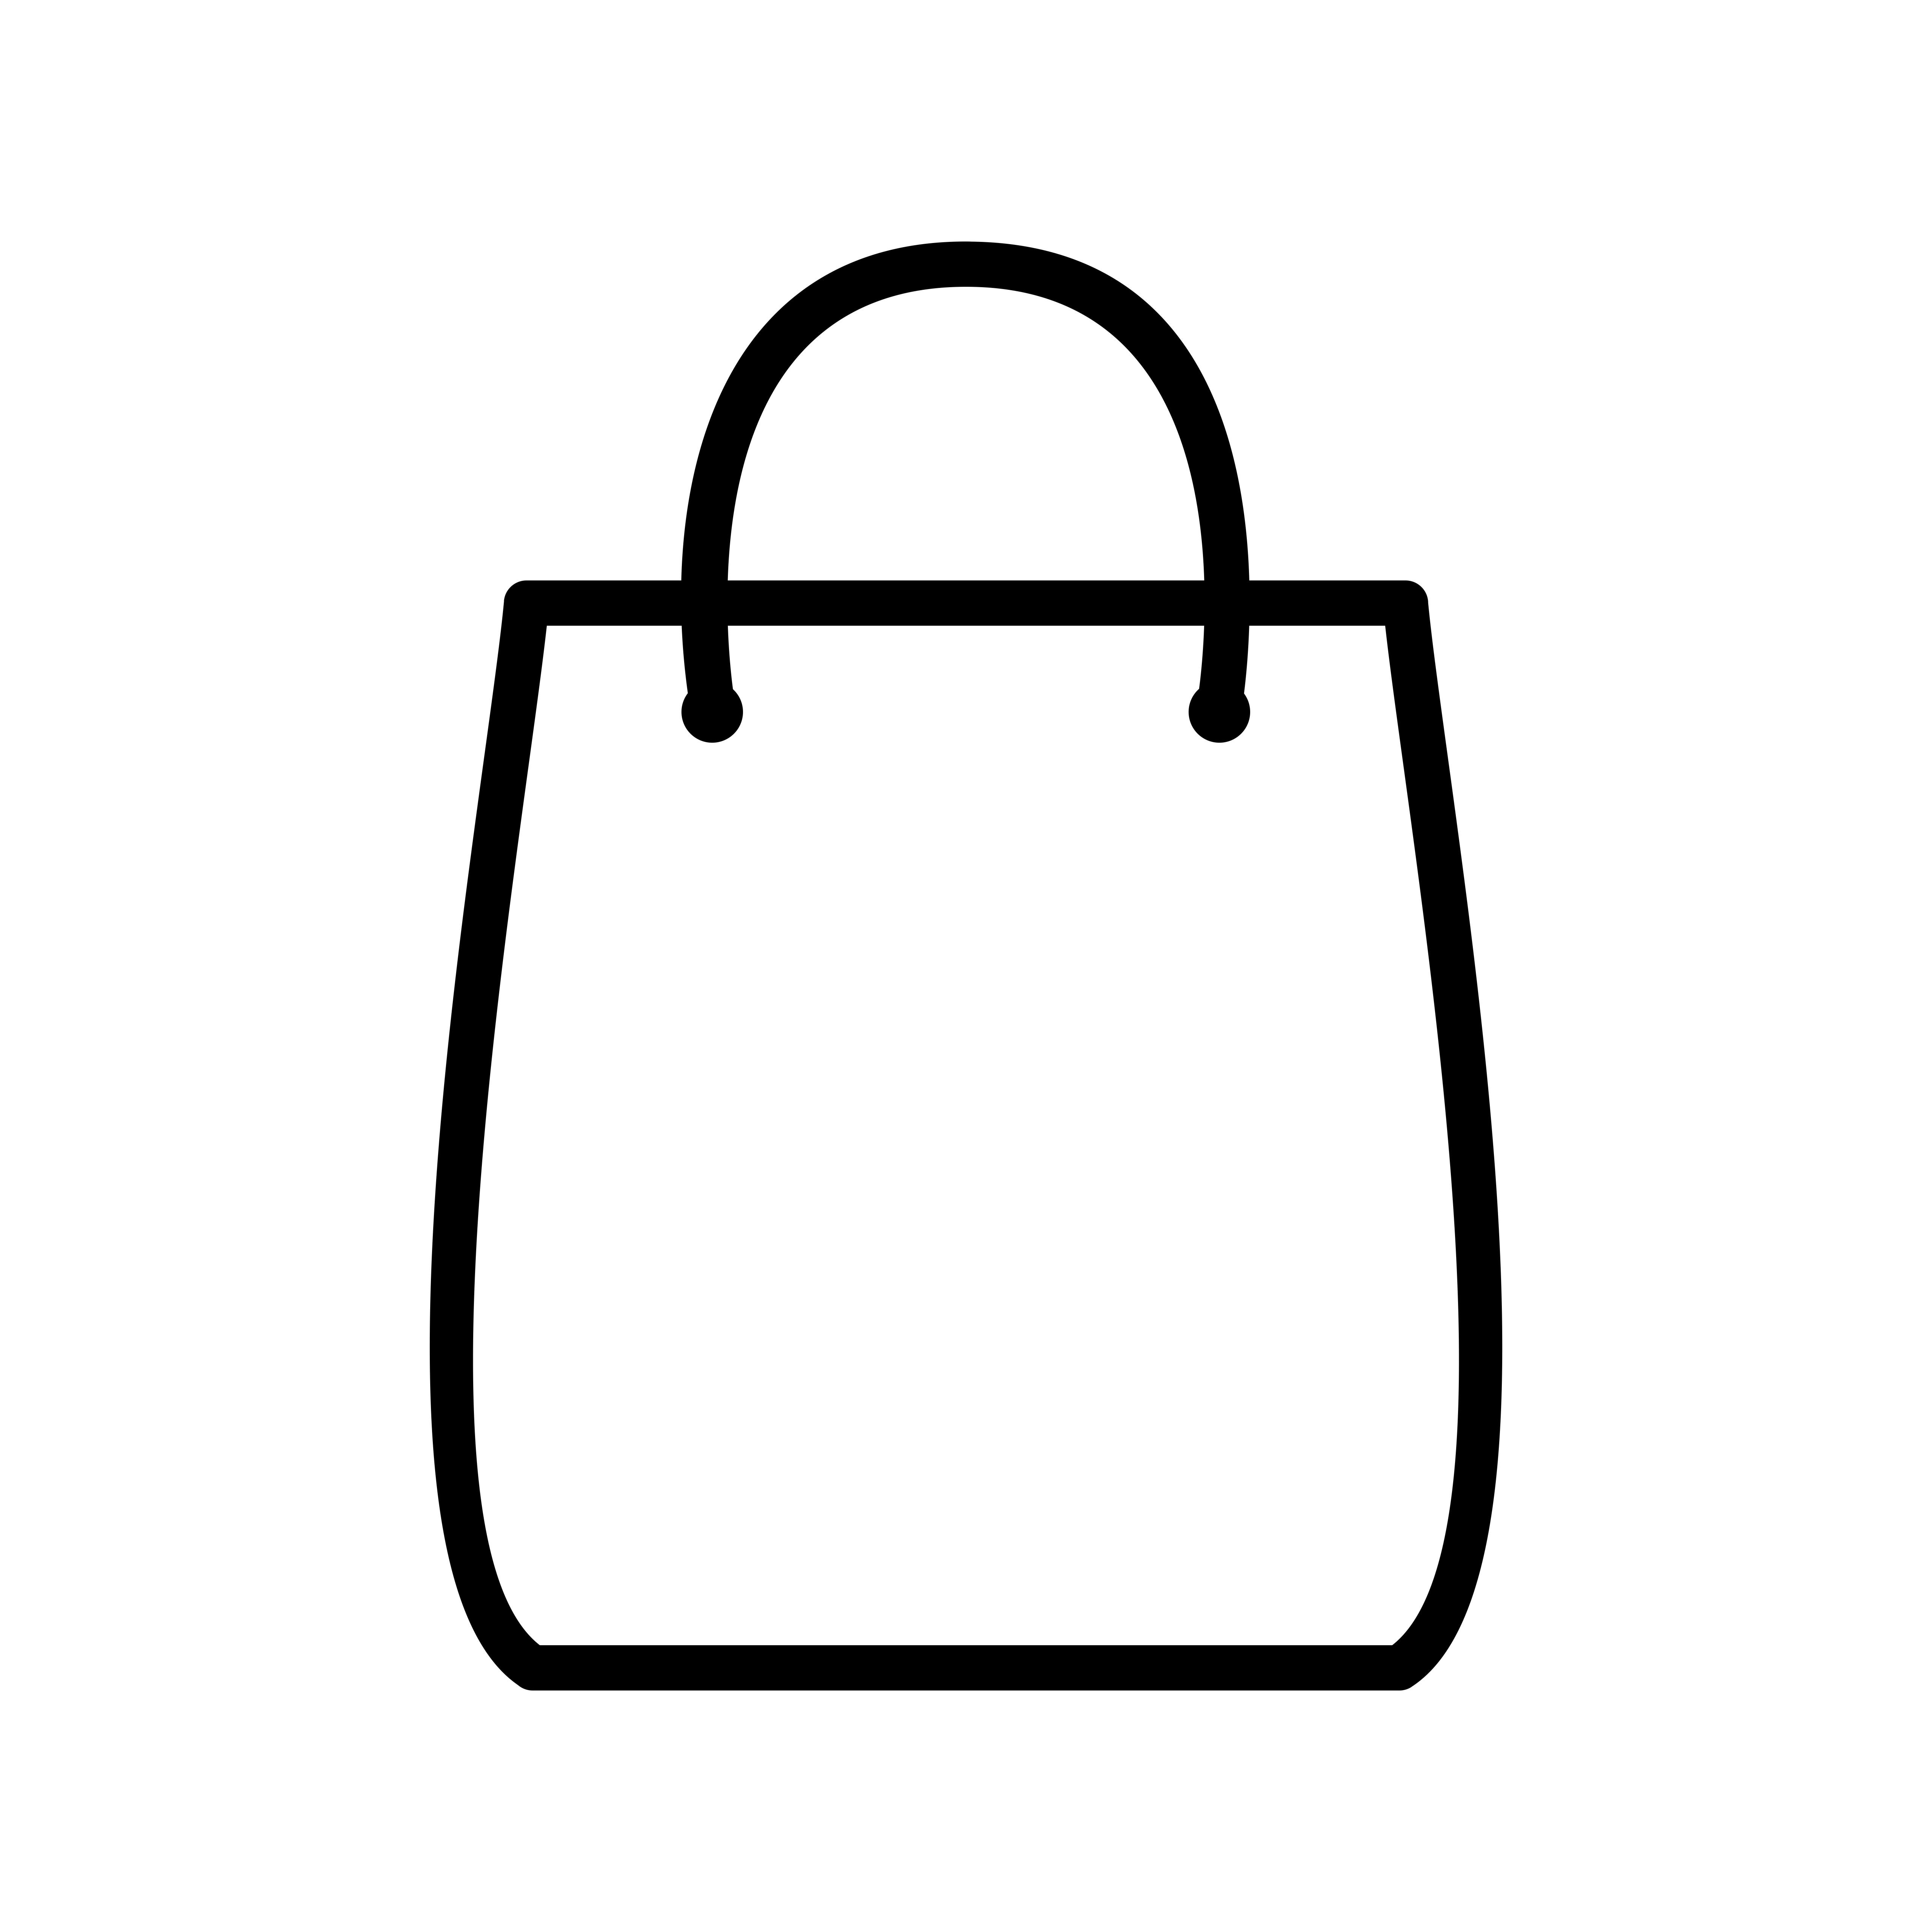 Shopping Bag Icon Vector Illustration - Download Free ...